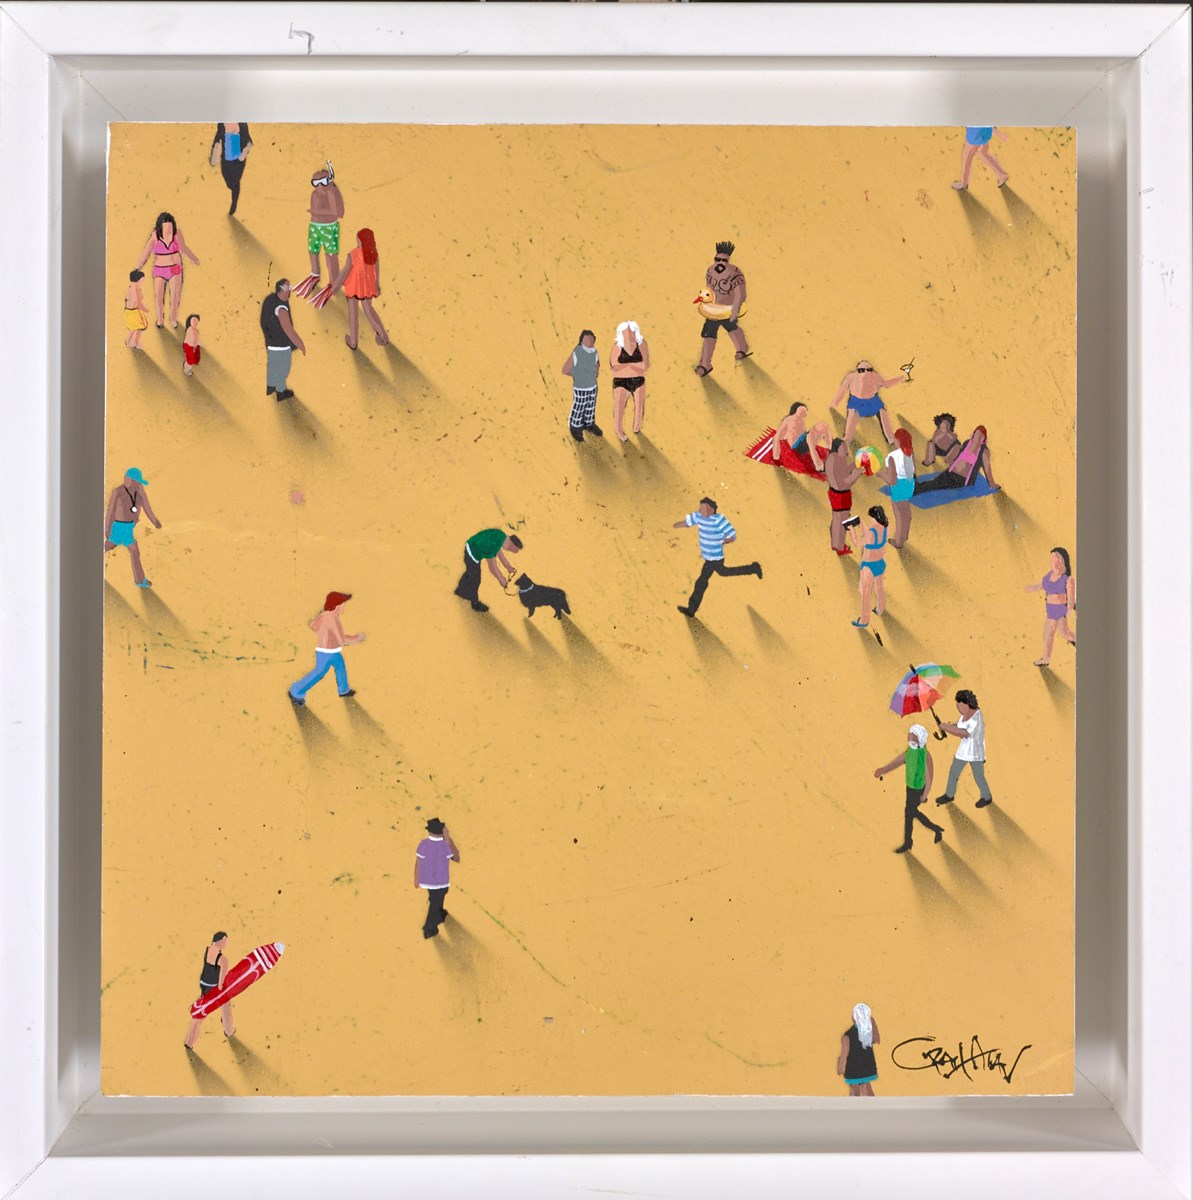 Beach Bums by craig alan -  sized 8x8 inches. Available from Whitewall Galleries